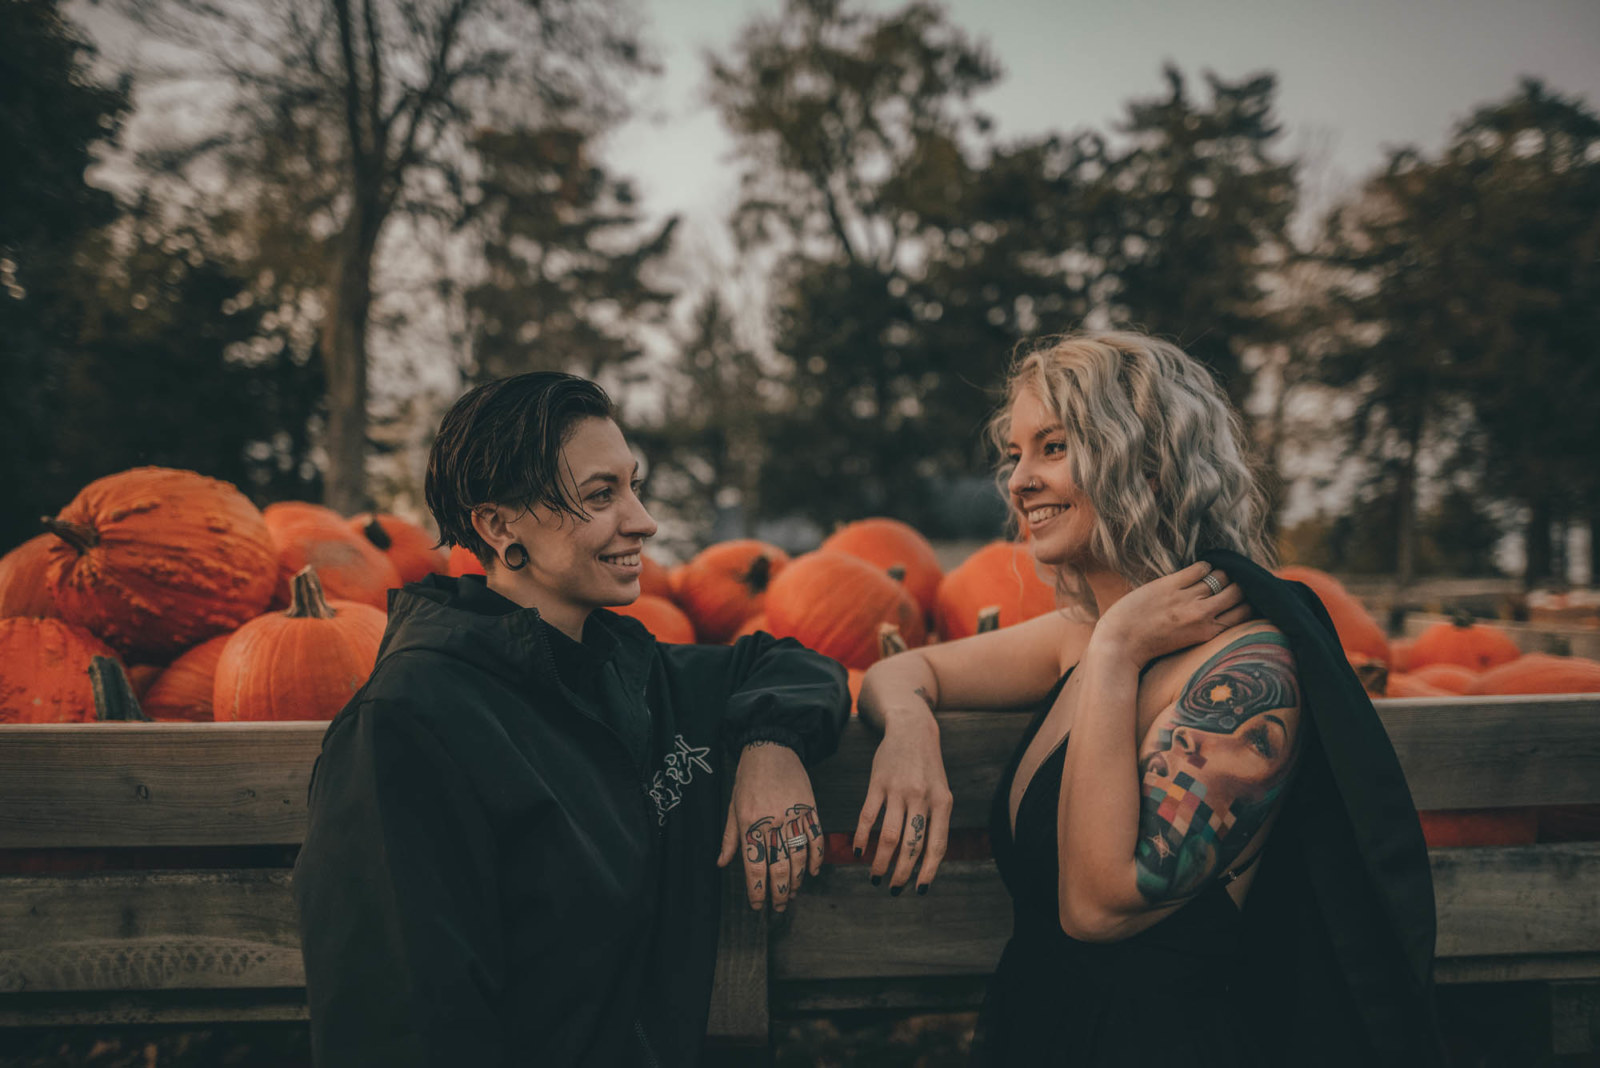 Thanksgiving Lesbian Proposal - Dancing With Her